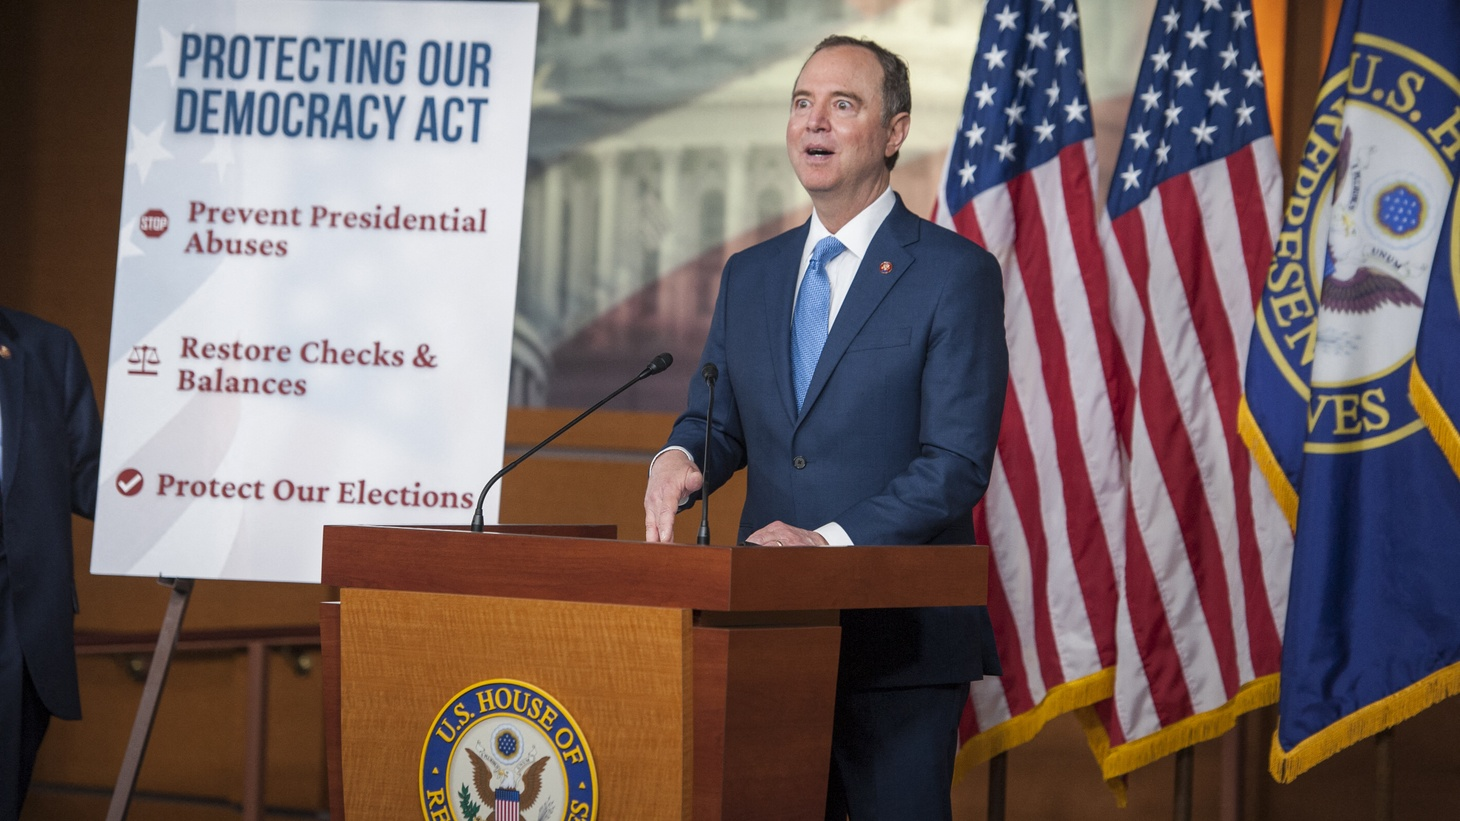 Congressman Adam Schiff tells KCRW that a Republican move to challenge the 2020 election endangers U.S. democracy. In this photo from September 23, 2020, Schiff offers remarks during a press conference on a reforms package at the US Capitol in Washington, DC.